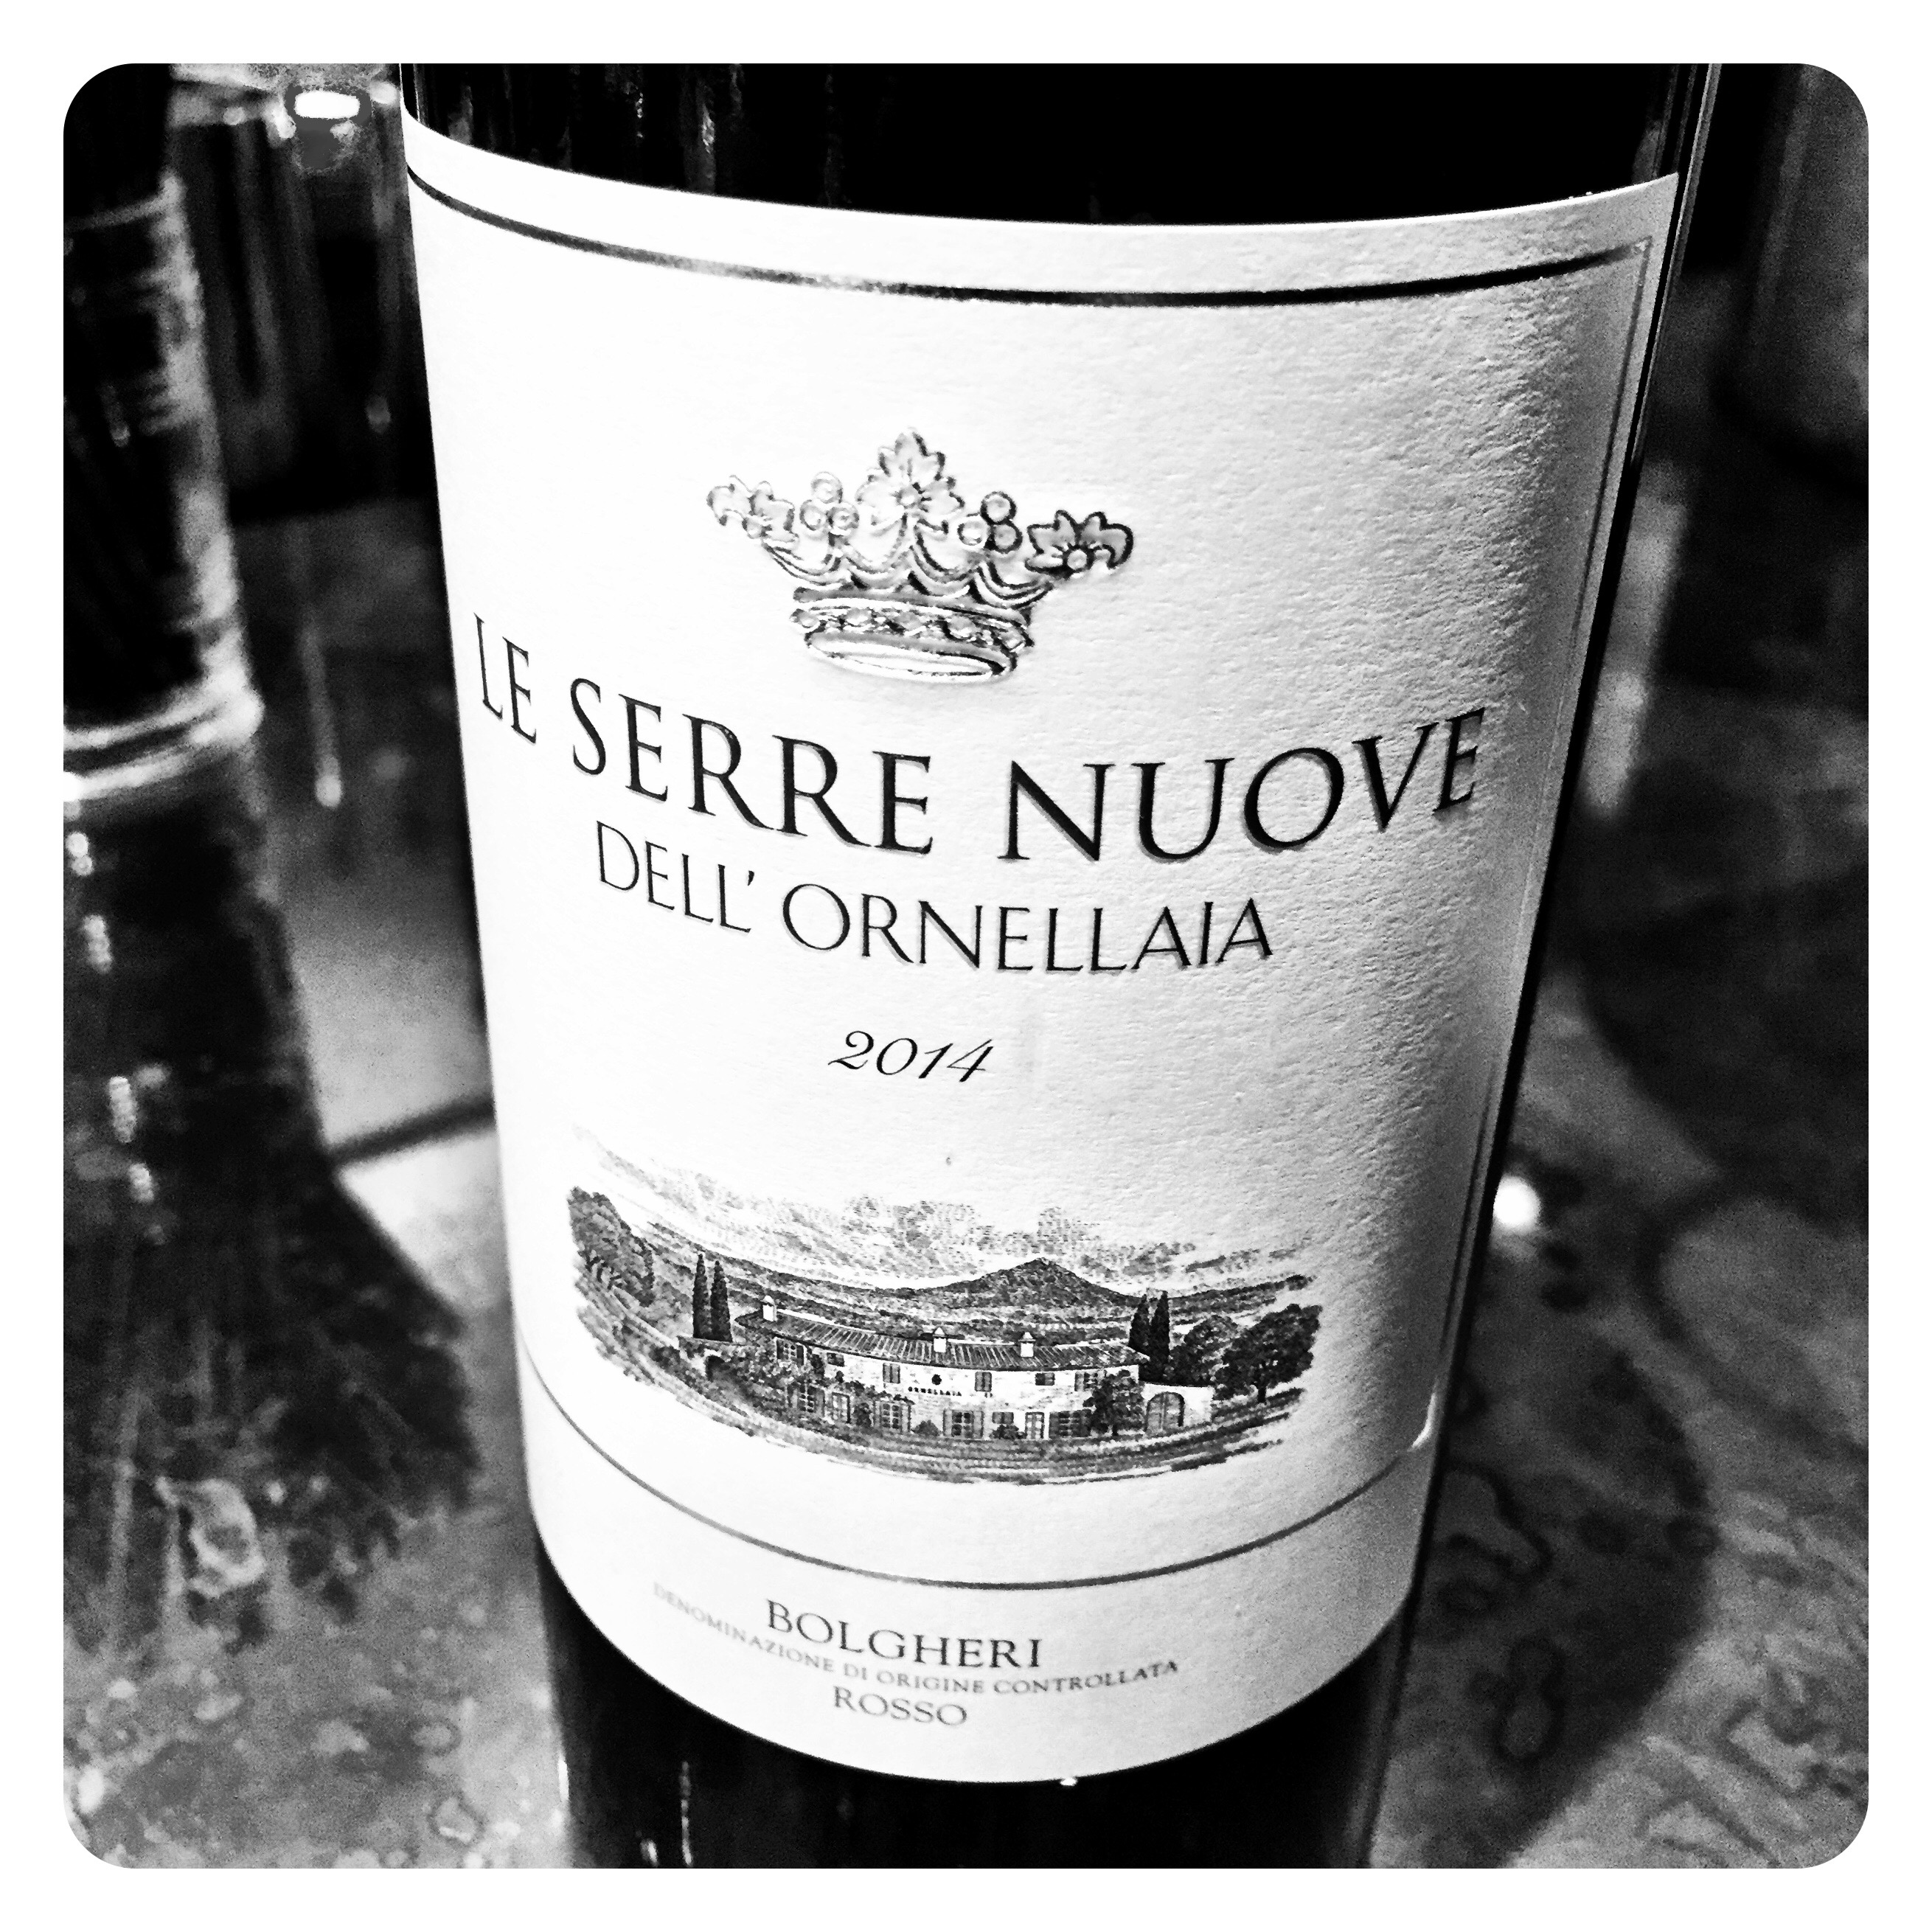 Serre Nuove Dell'ornellaia 2014 Ornellaia 2014 Exceeding All Quality Expectations For The